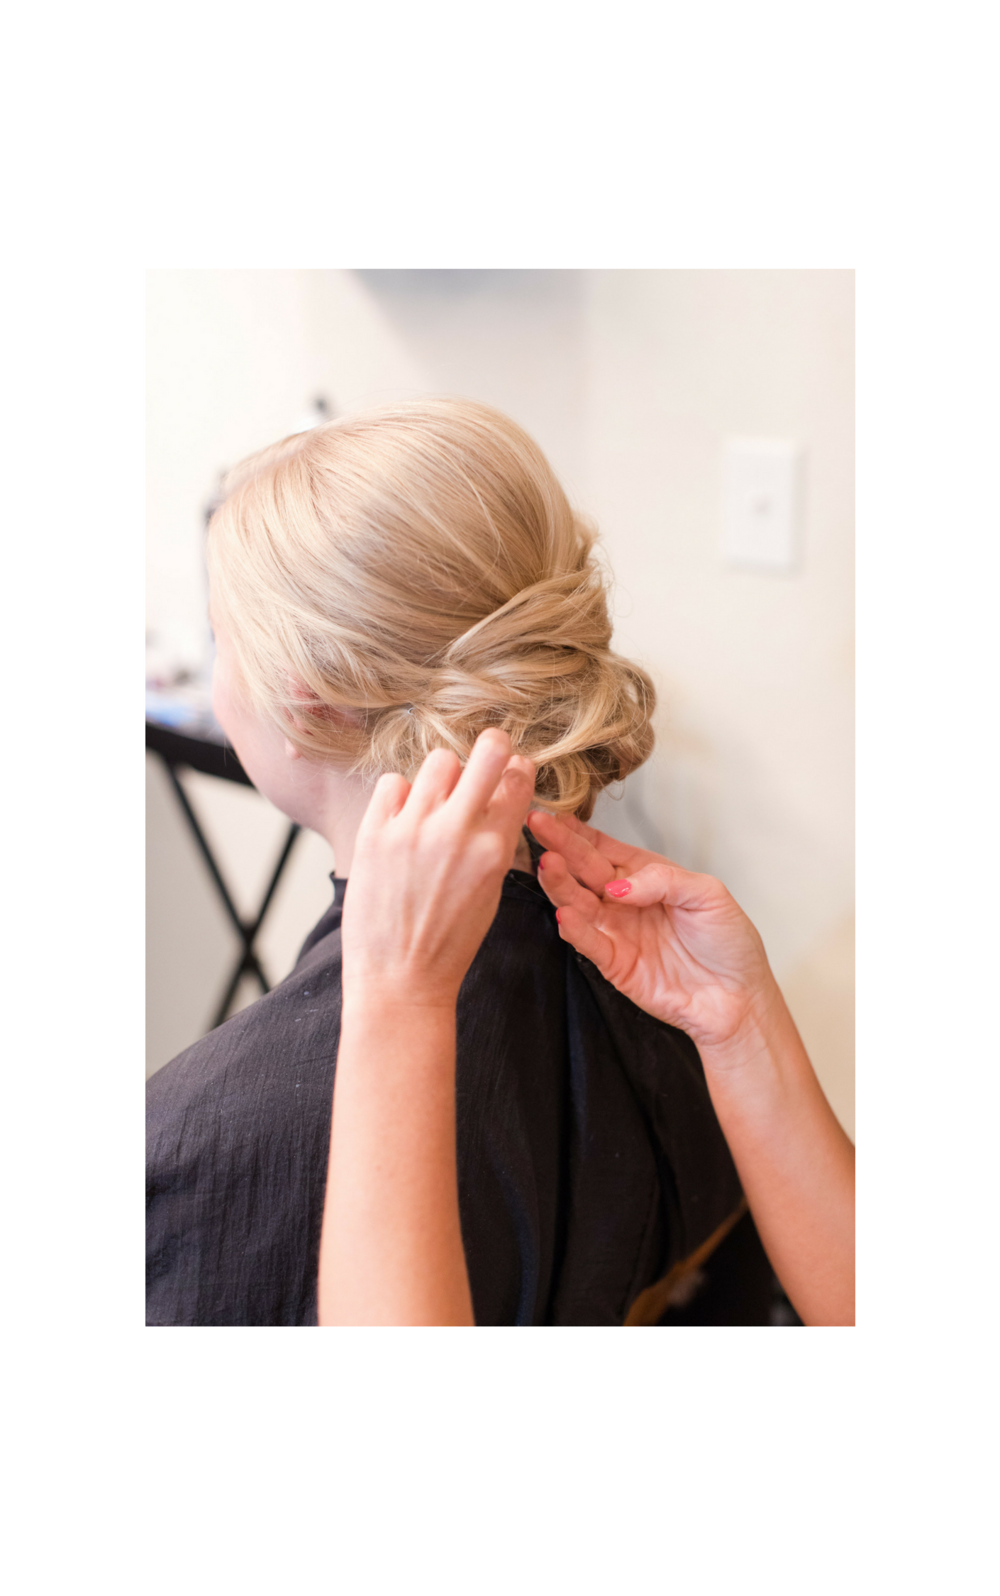 Hairstyling - Offered for all occasions such as, weddings, photoshoots, special events, prom, makeovers, and more.